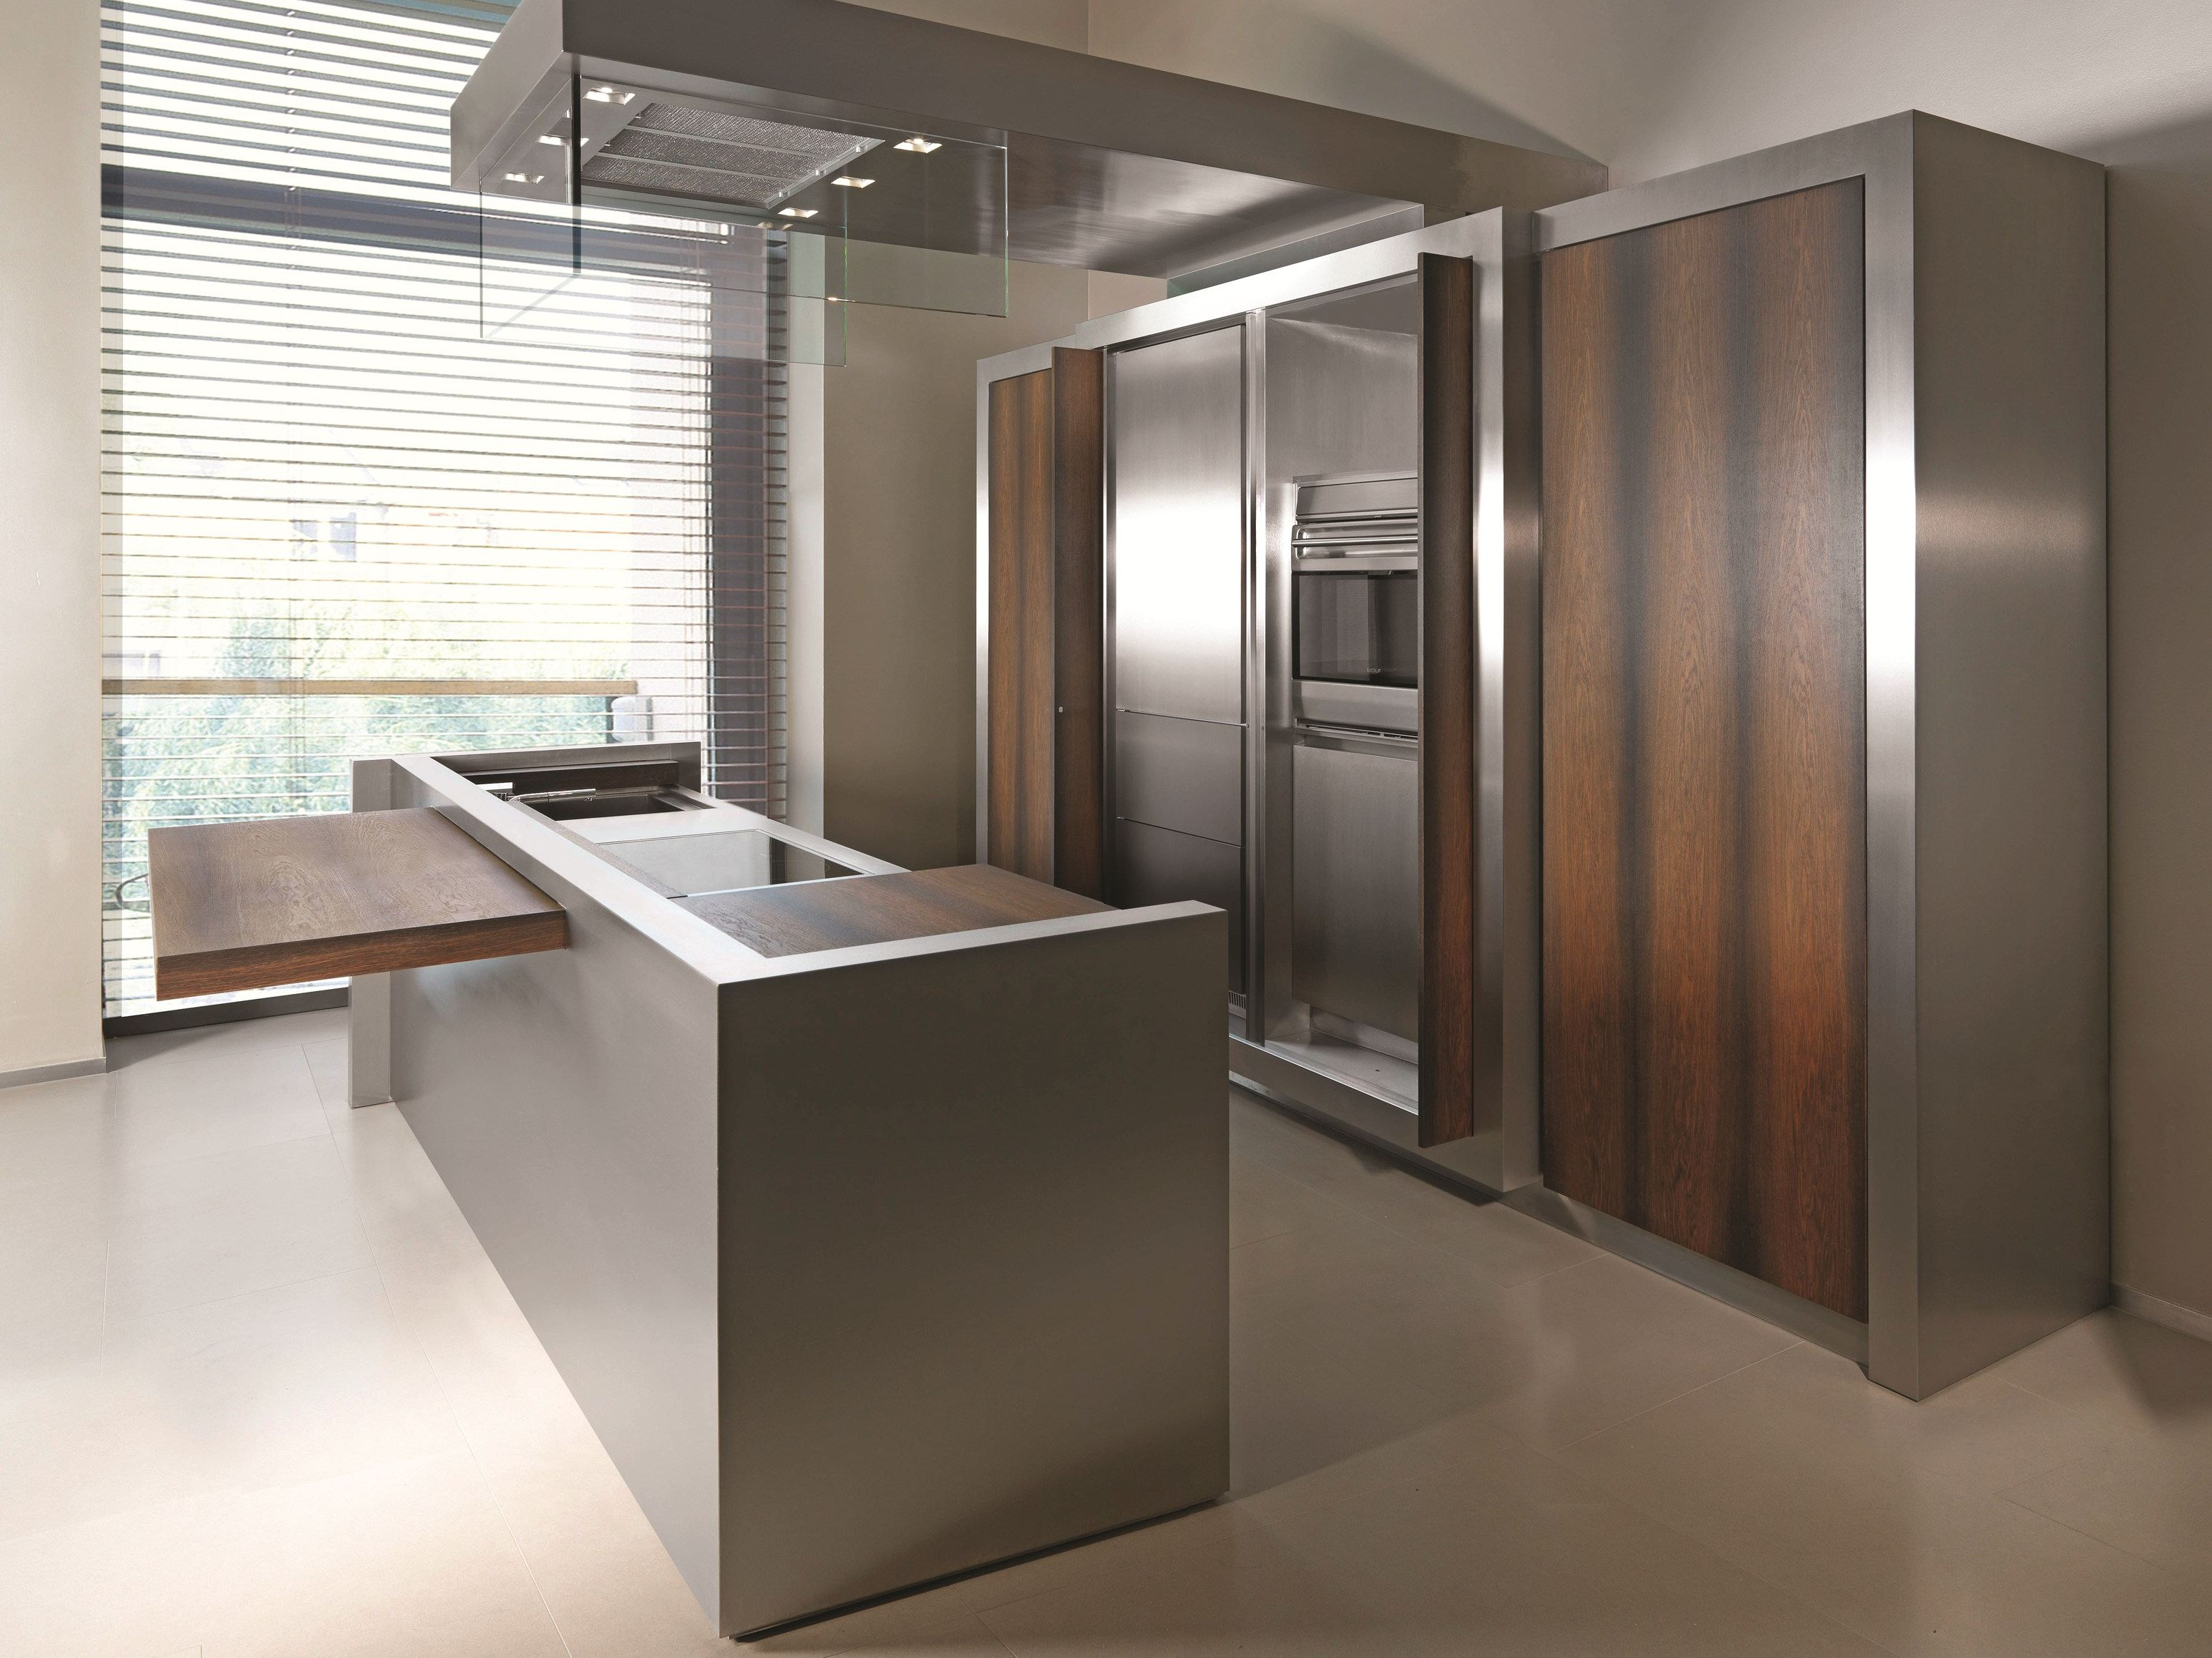 Stainless Steel and Wood Kitchens